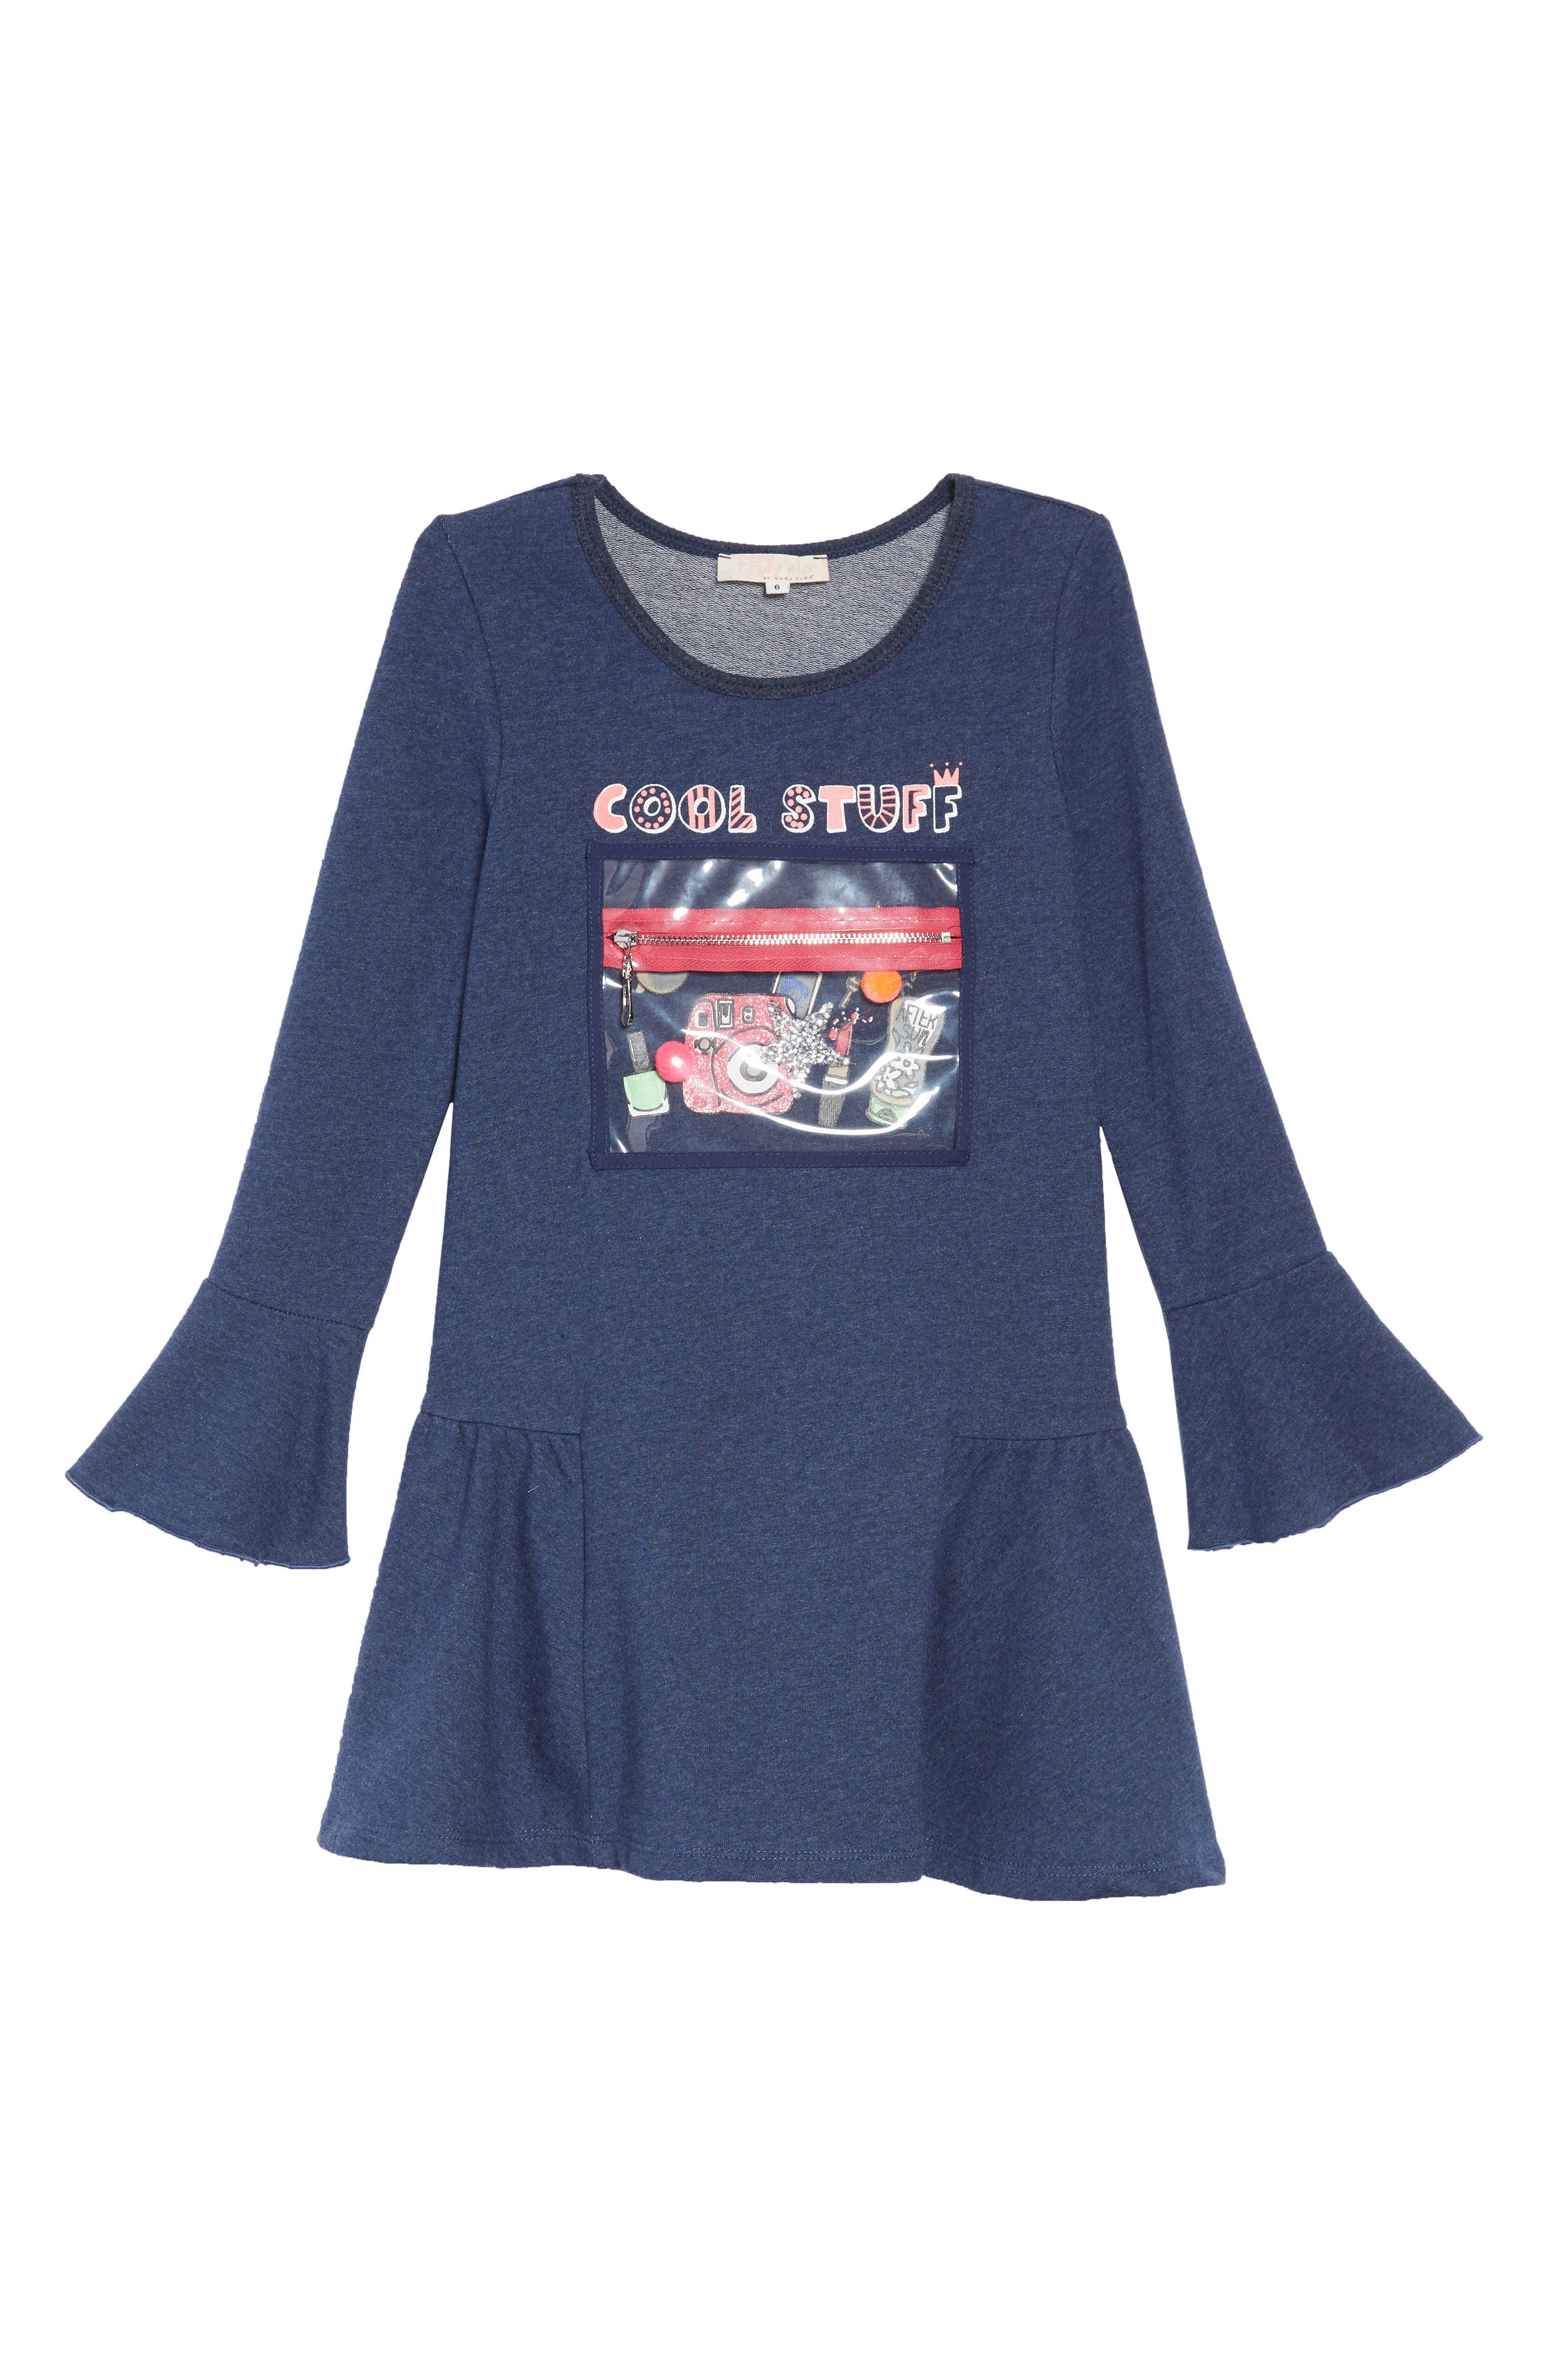 Cool Stuff Knit Dress with Zip Pouch,                             Alternate thumbnail 2, color,                             NAVY